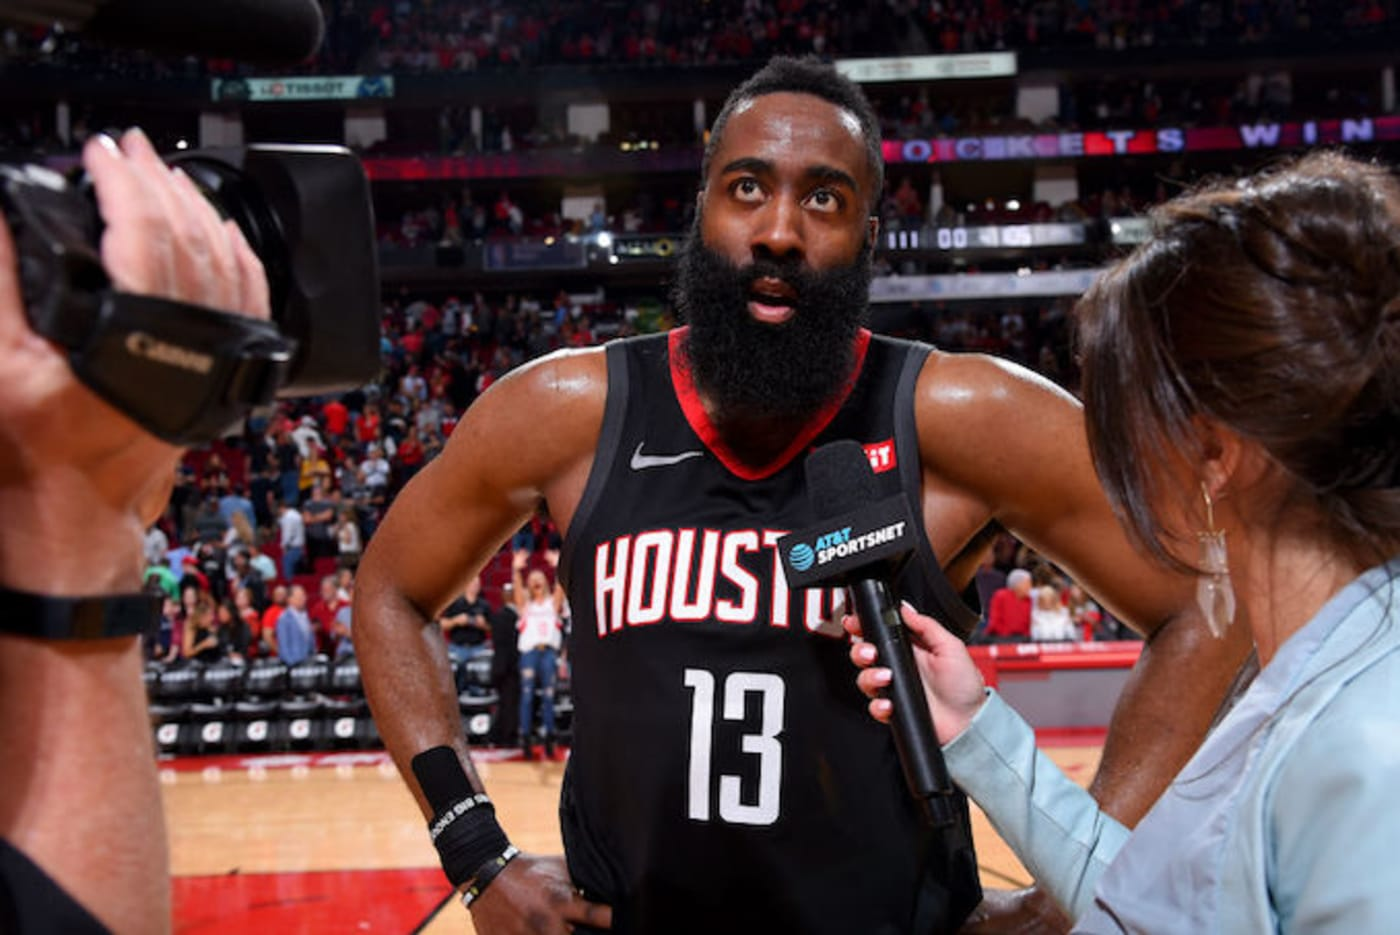 This is James Harden.